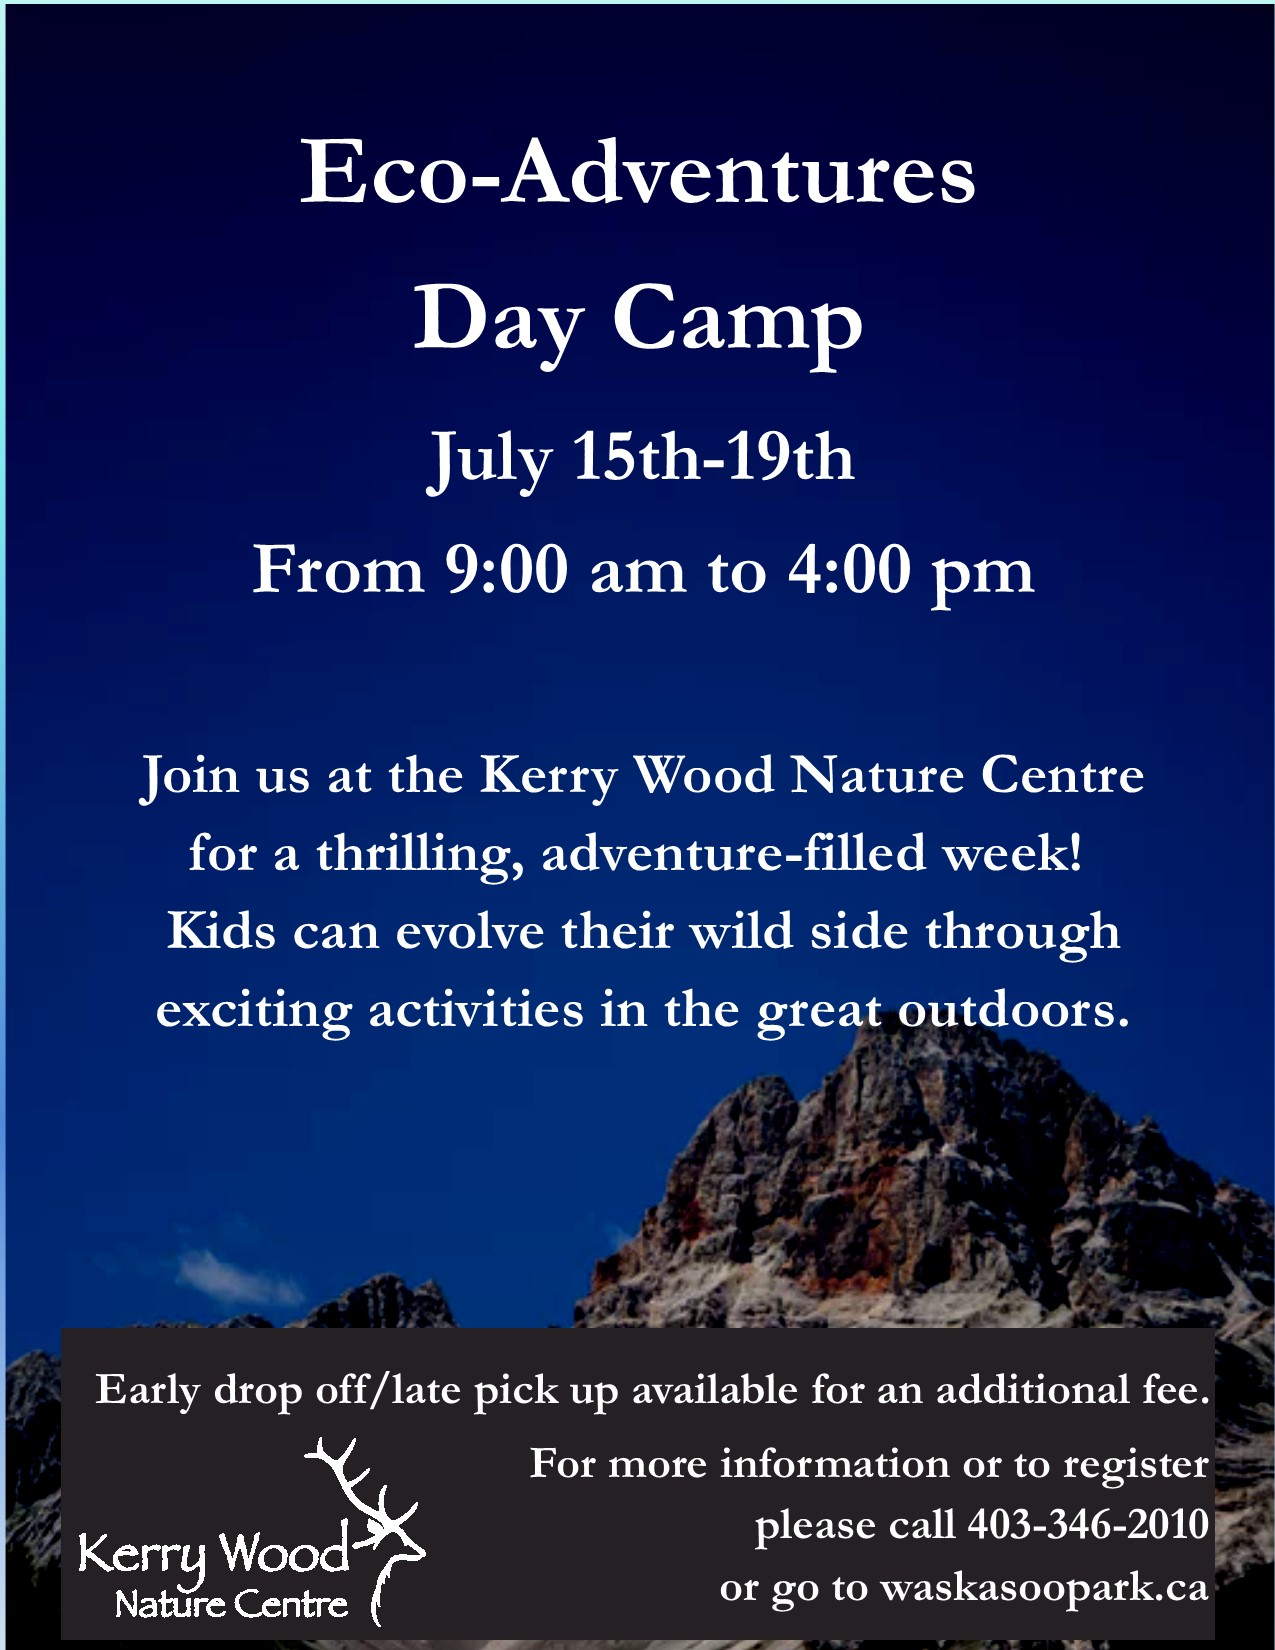 Eco-Adventures Day Camp